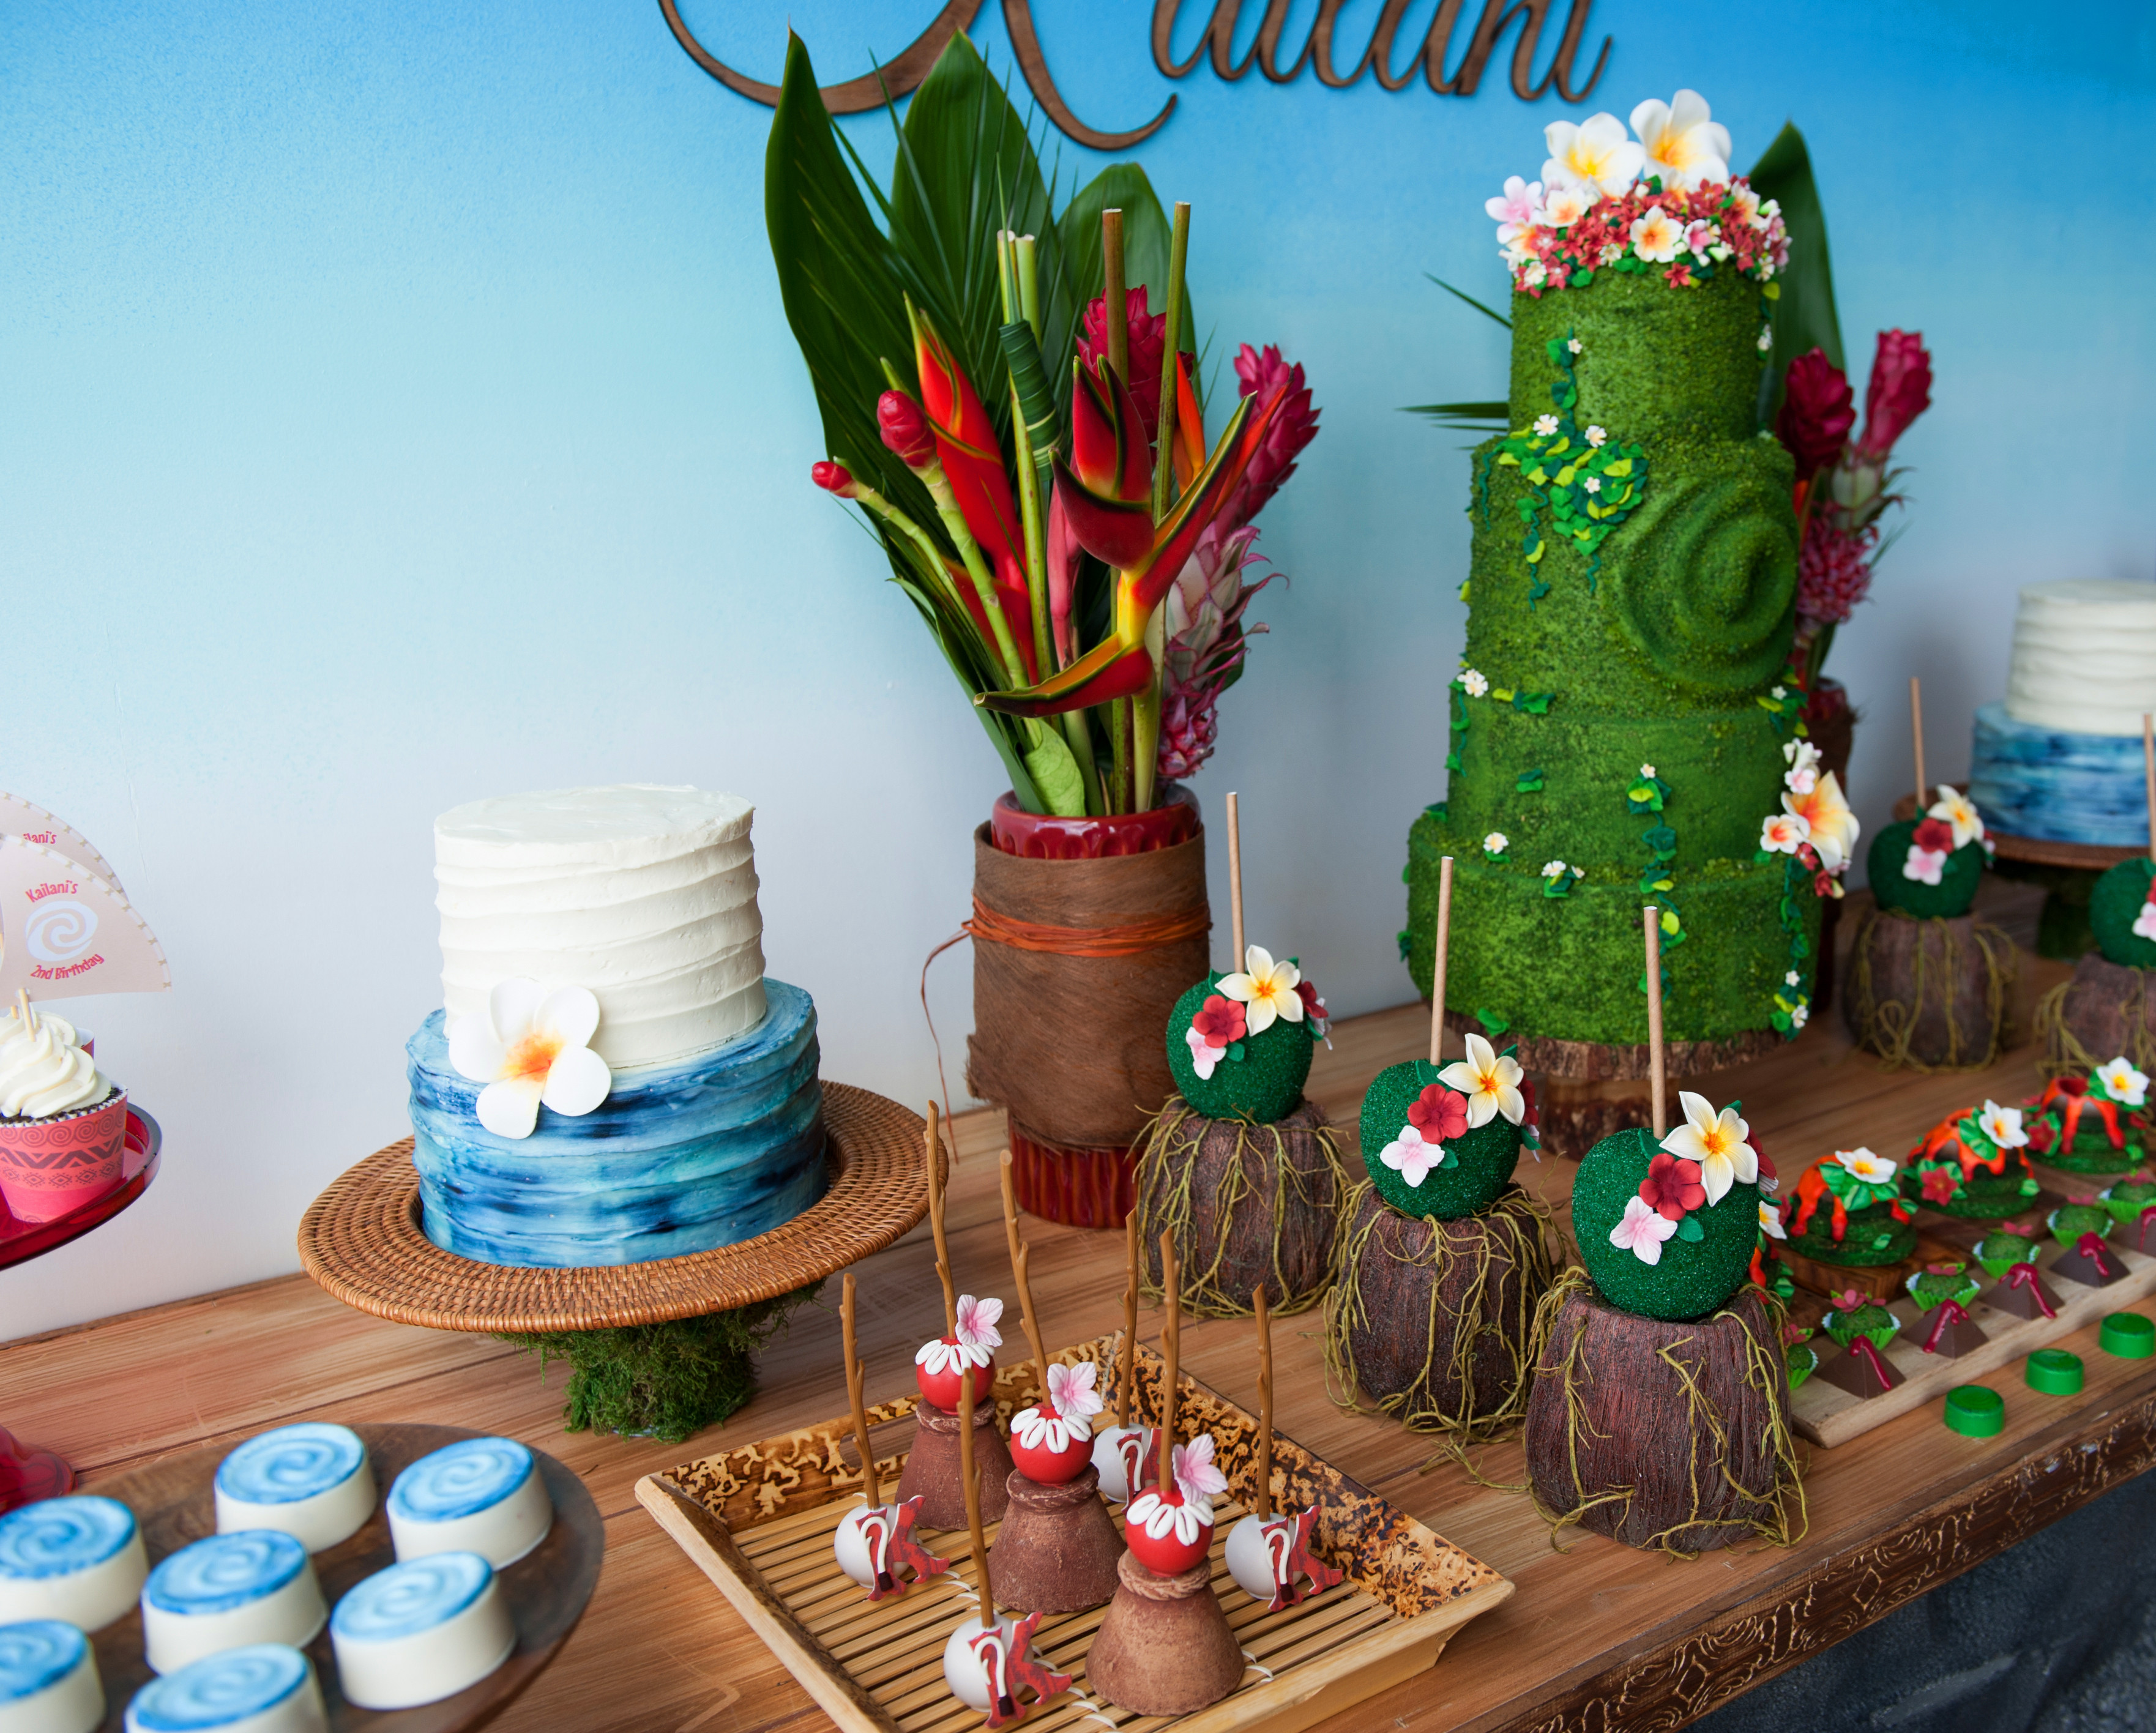 Best ideas about Moana Birthday Party Ideas . Save or Pin Moana Themed Birthday Party Now.